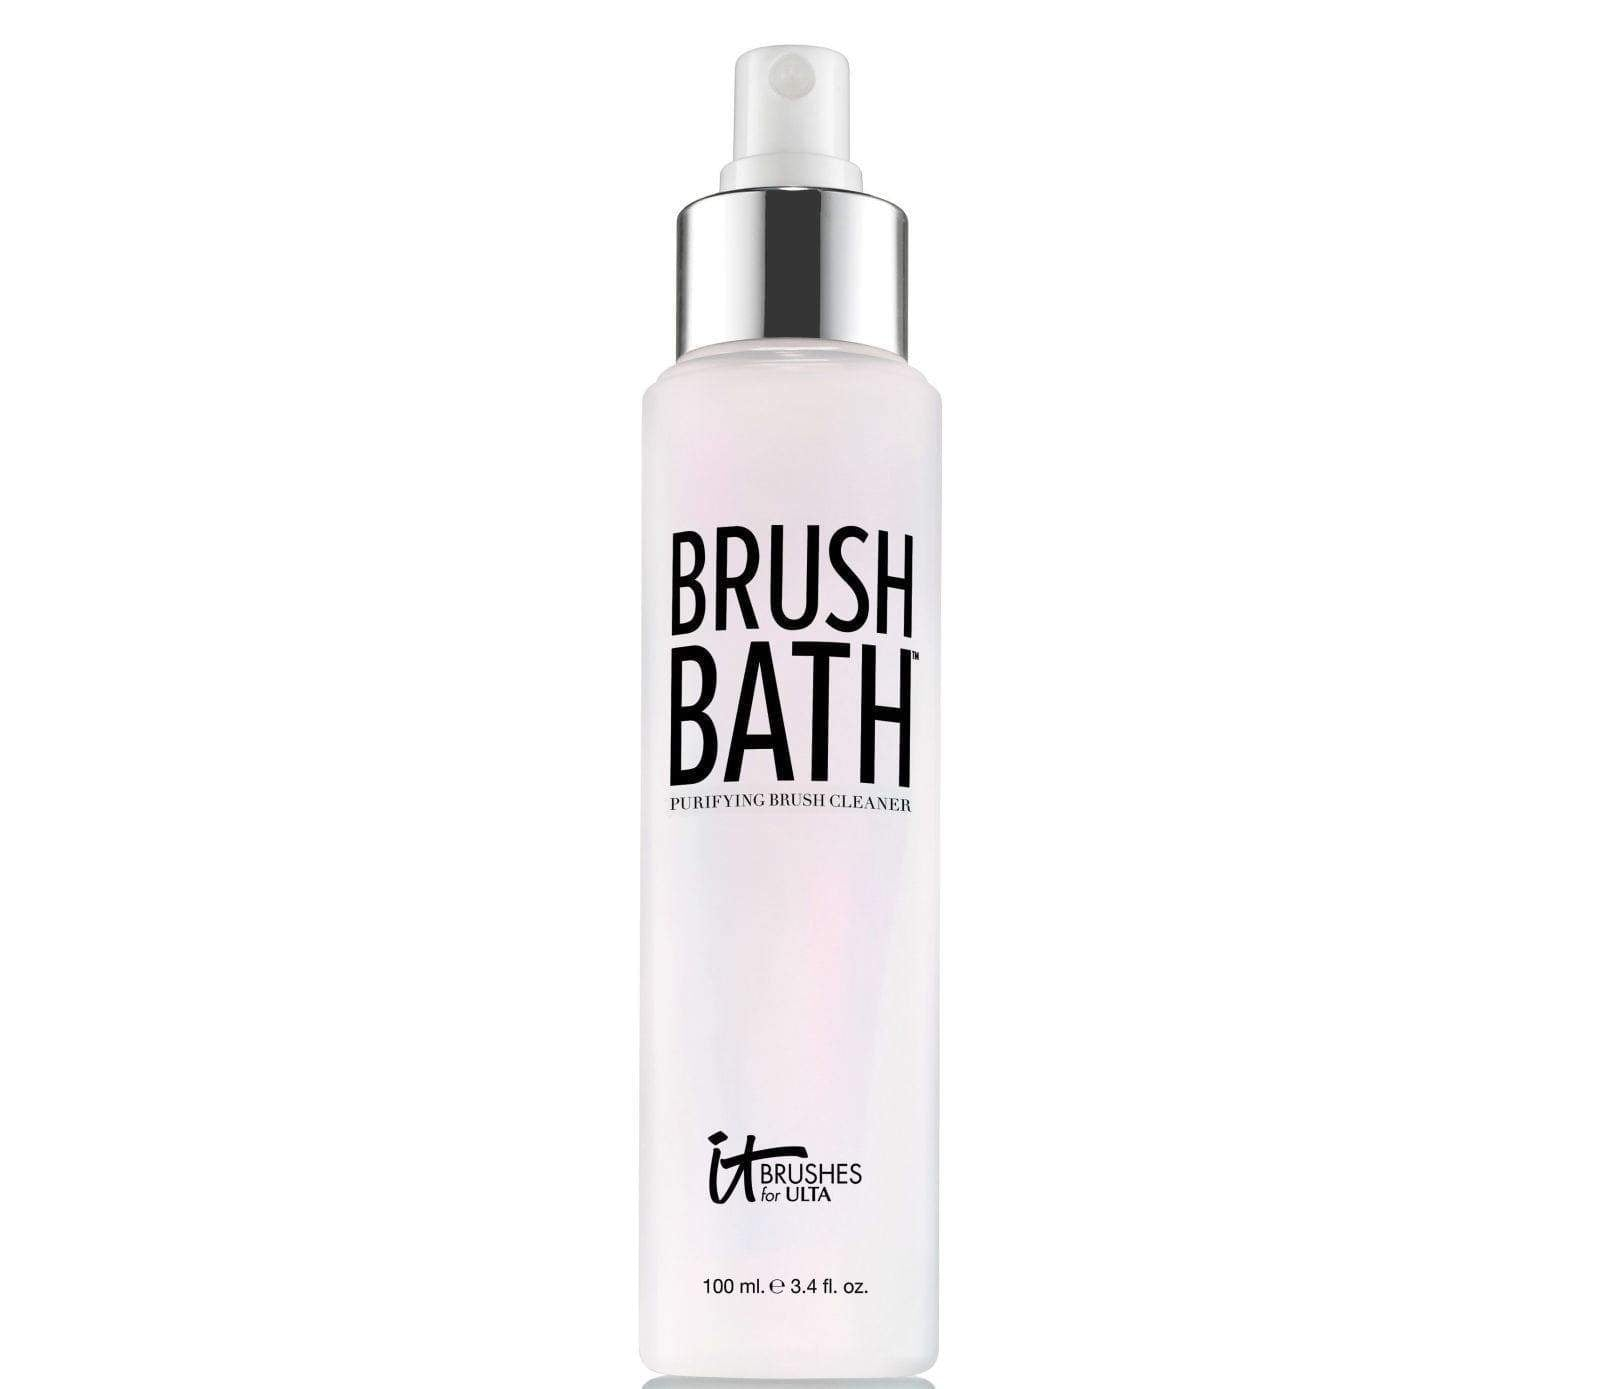 It Cosmetics Brush Bath Purifying Instant Brush Cleaner, brush cleaner, London Loves Beauty